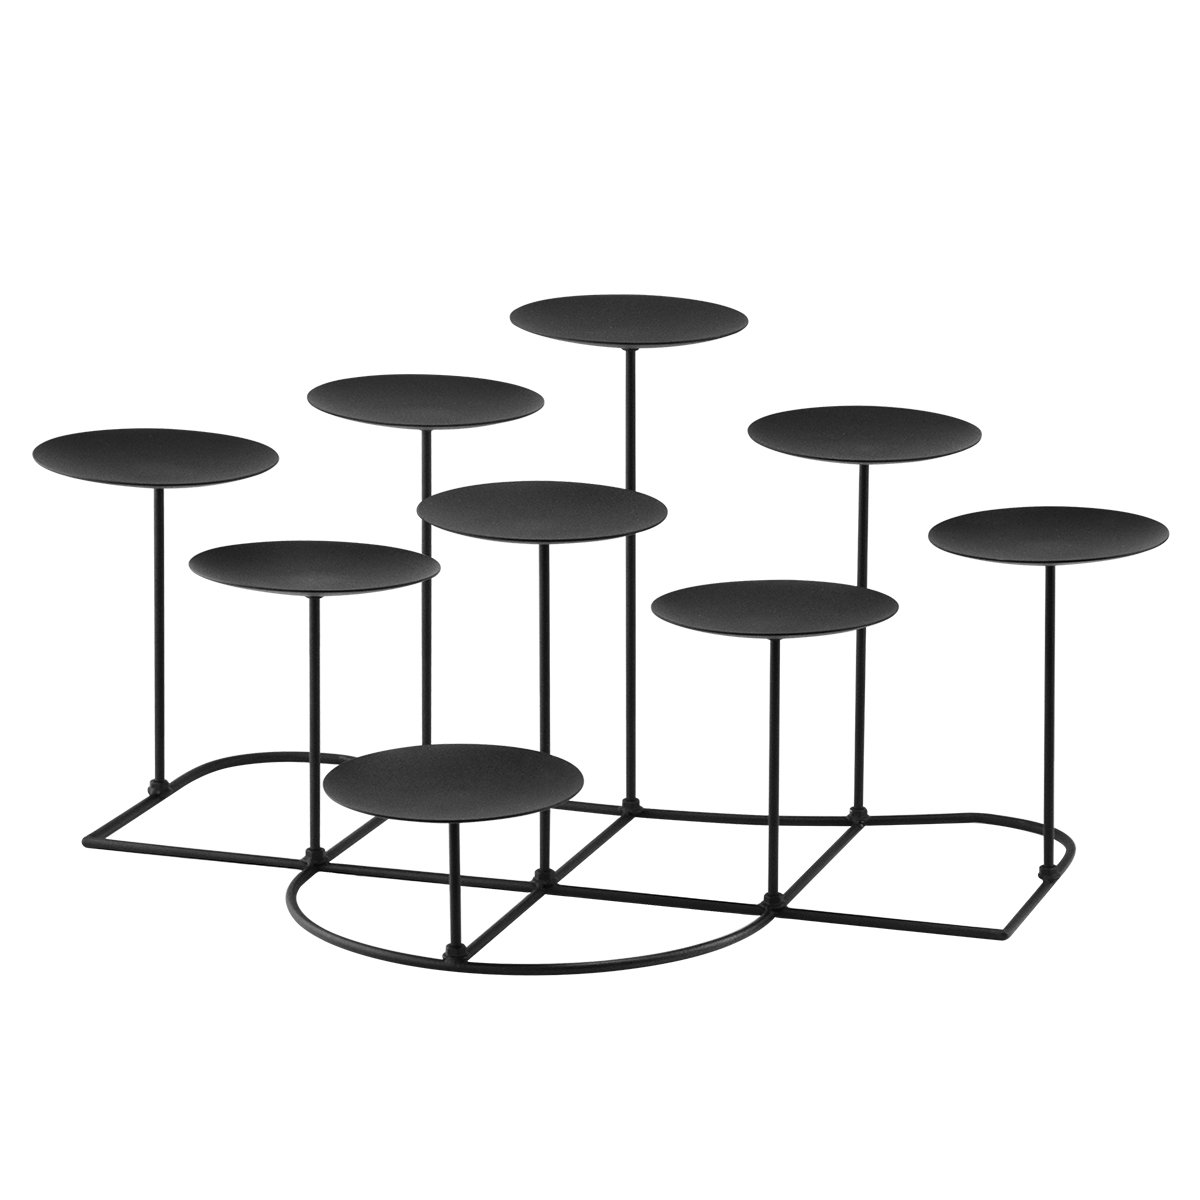 smtyle DIY 9 Mantle Candelabra Flameless or Wax Candle Holders For Fireplace with Black Iron Decoration on Desk / Floor